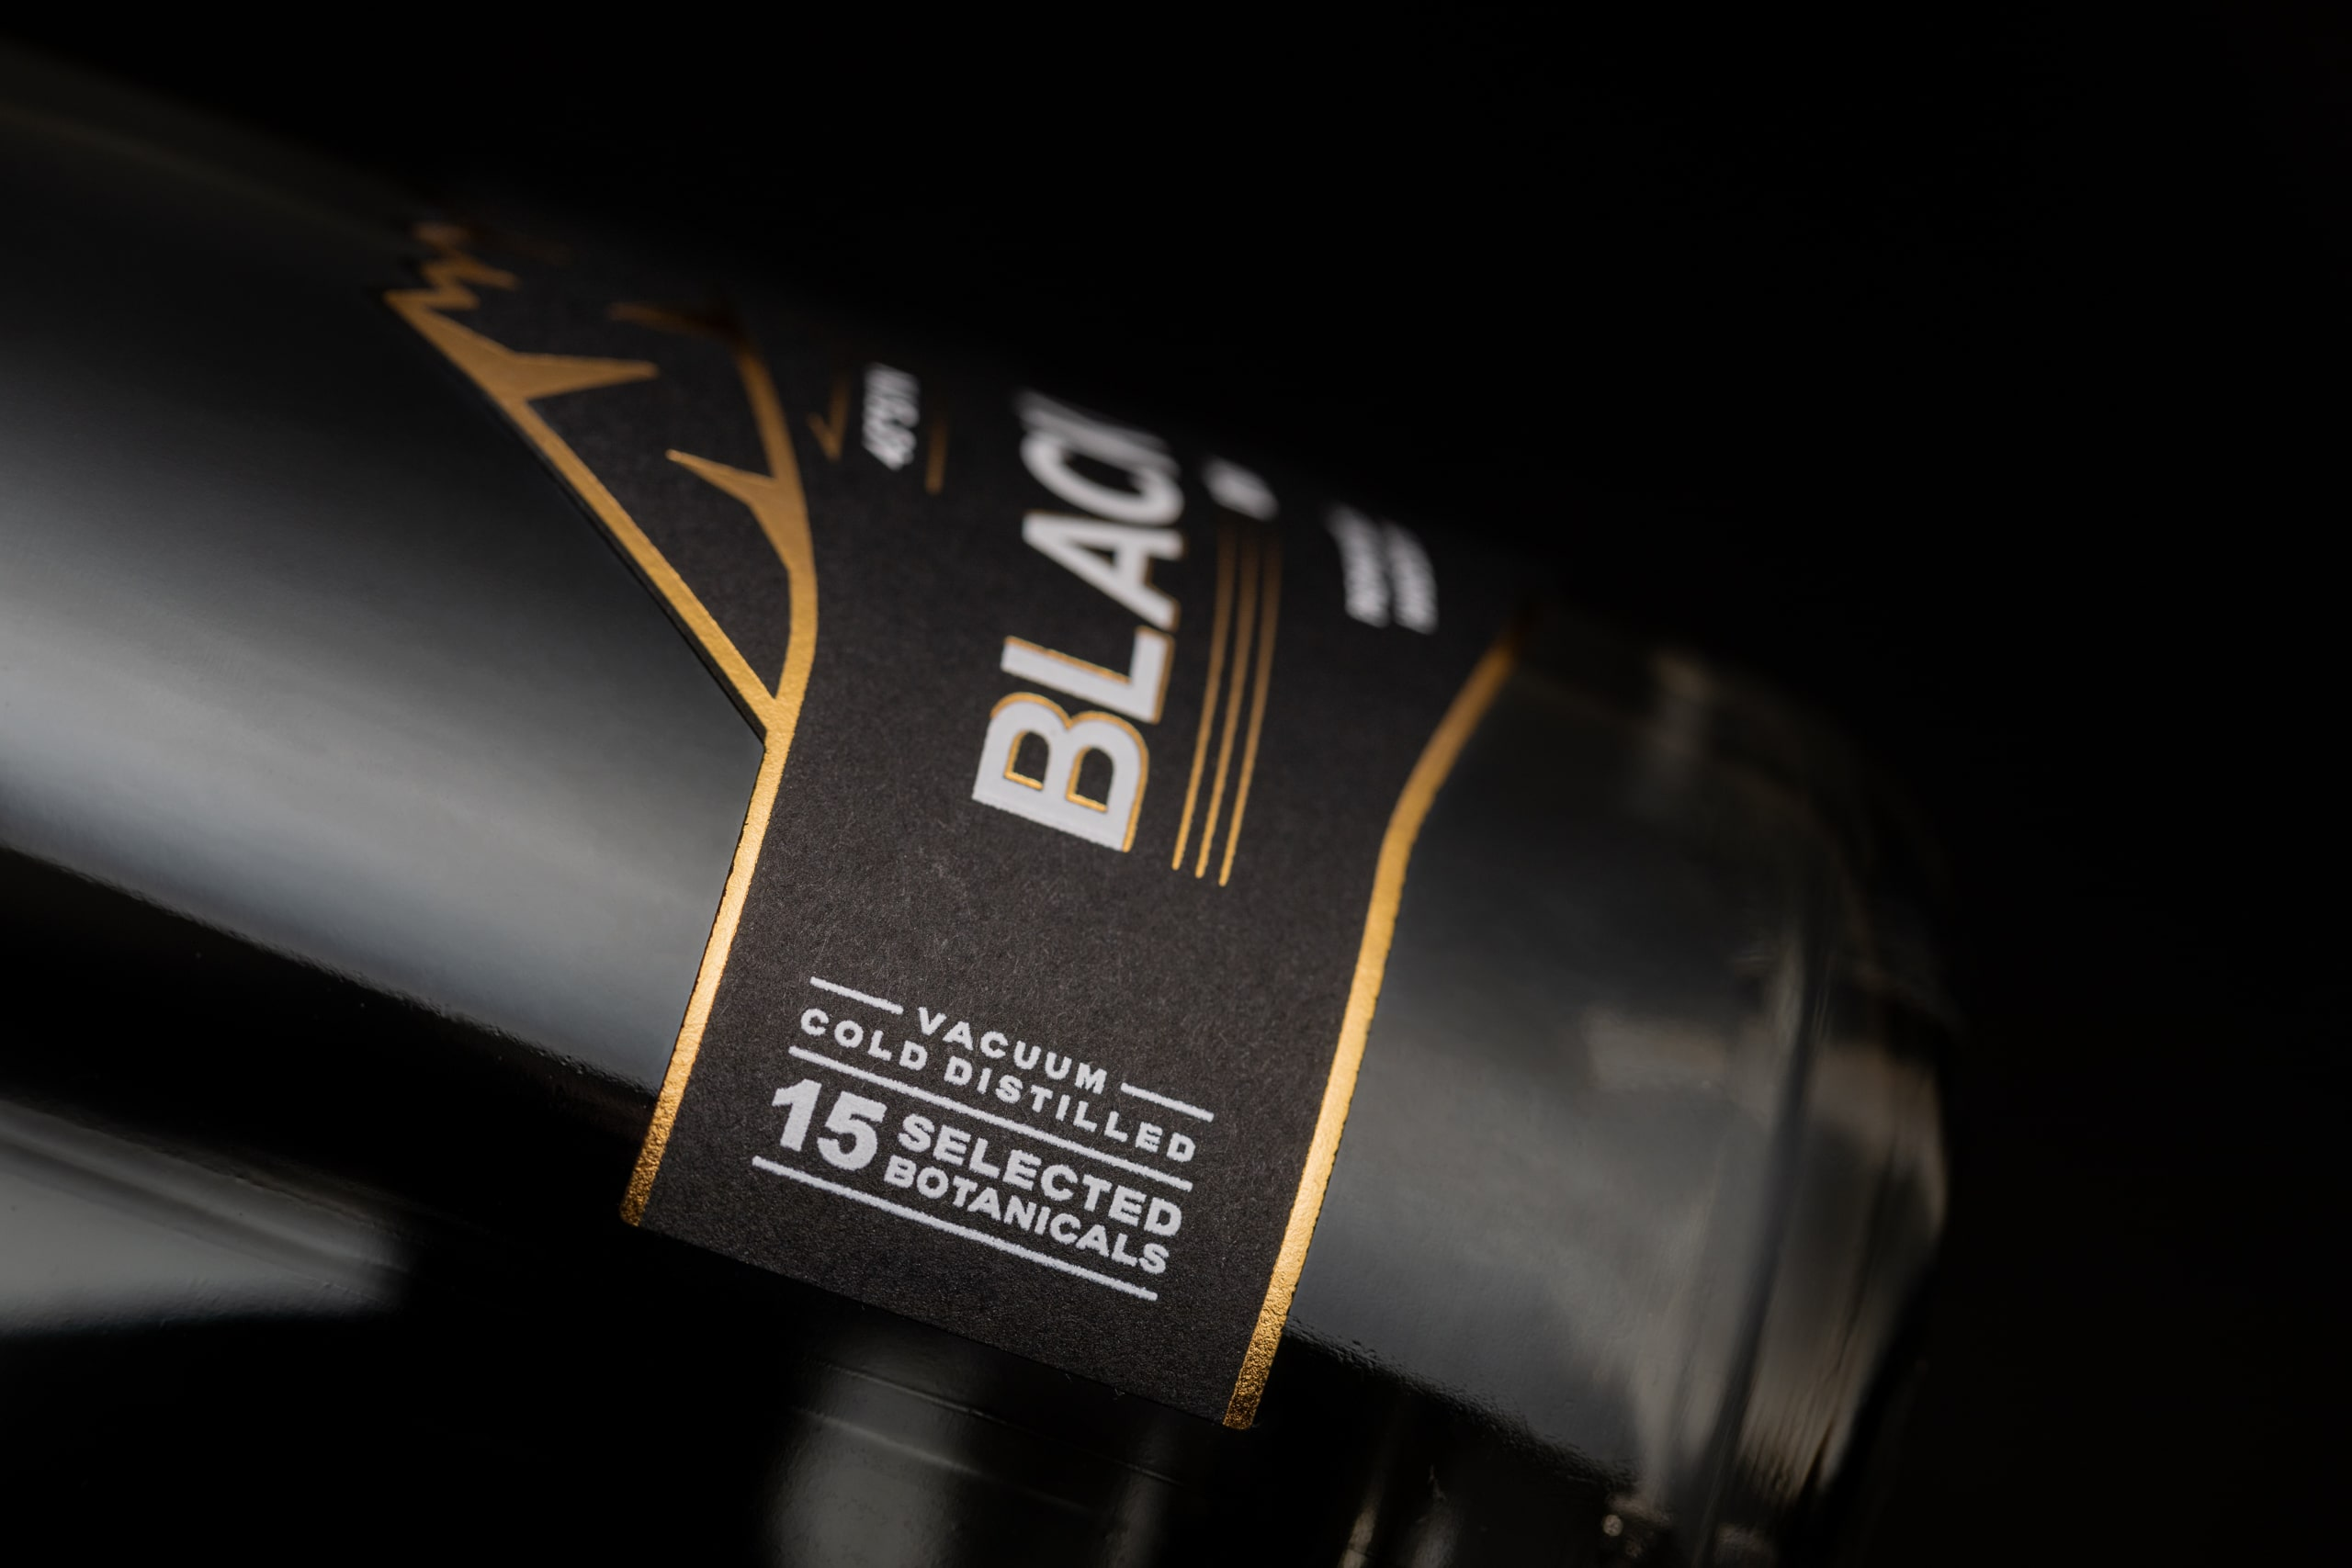 Blackmouth Dry Gin Label Re-Designed by Antonio Golia